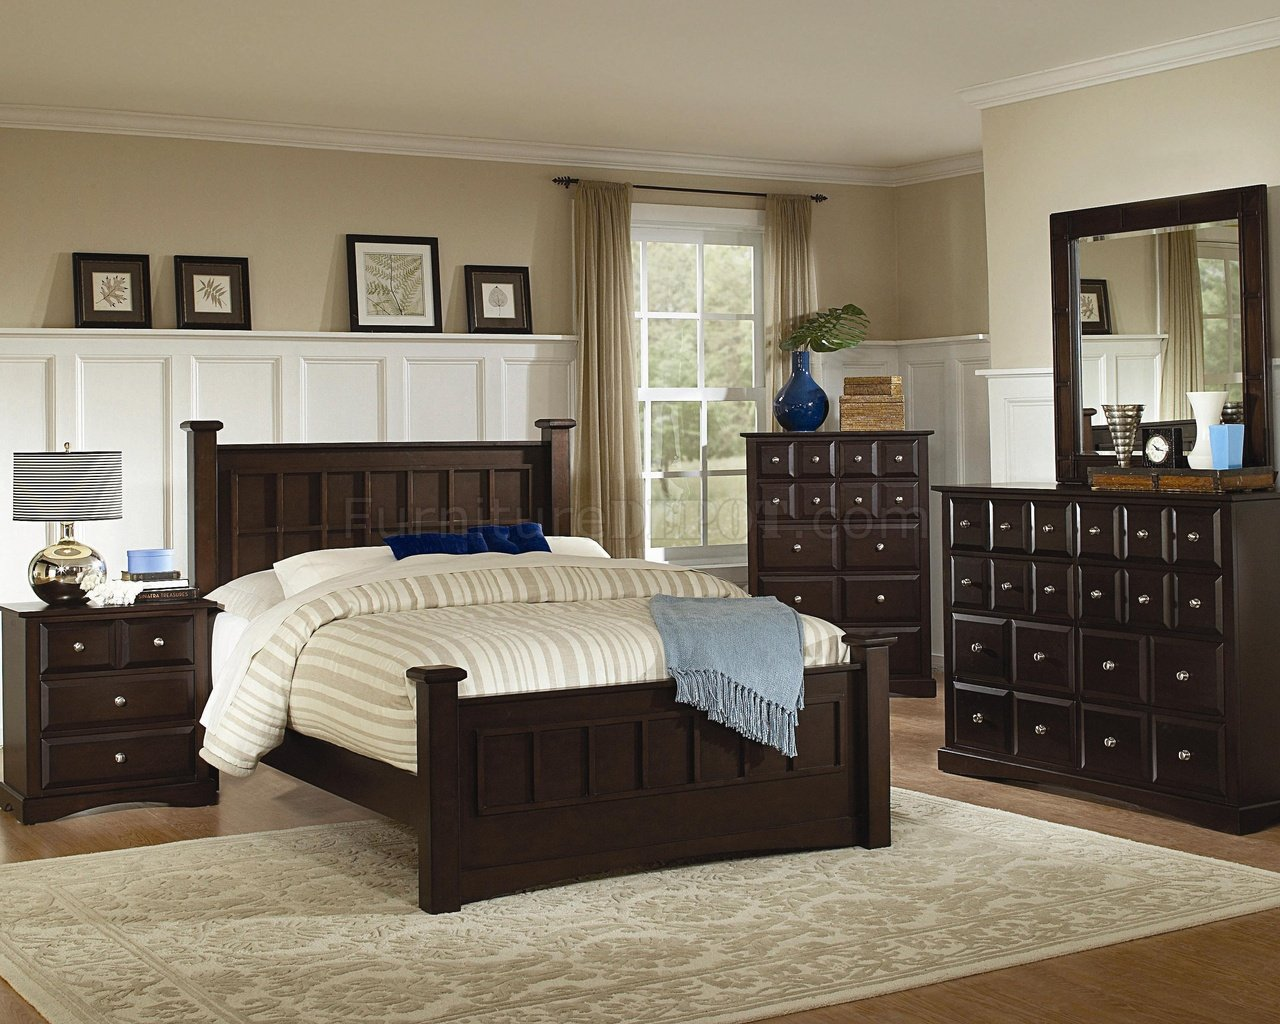 Transitional Bedroom Furniture rich cappuccino finish transitional bedroom set w/options